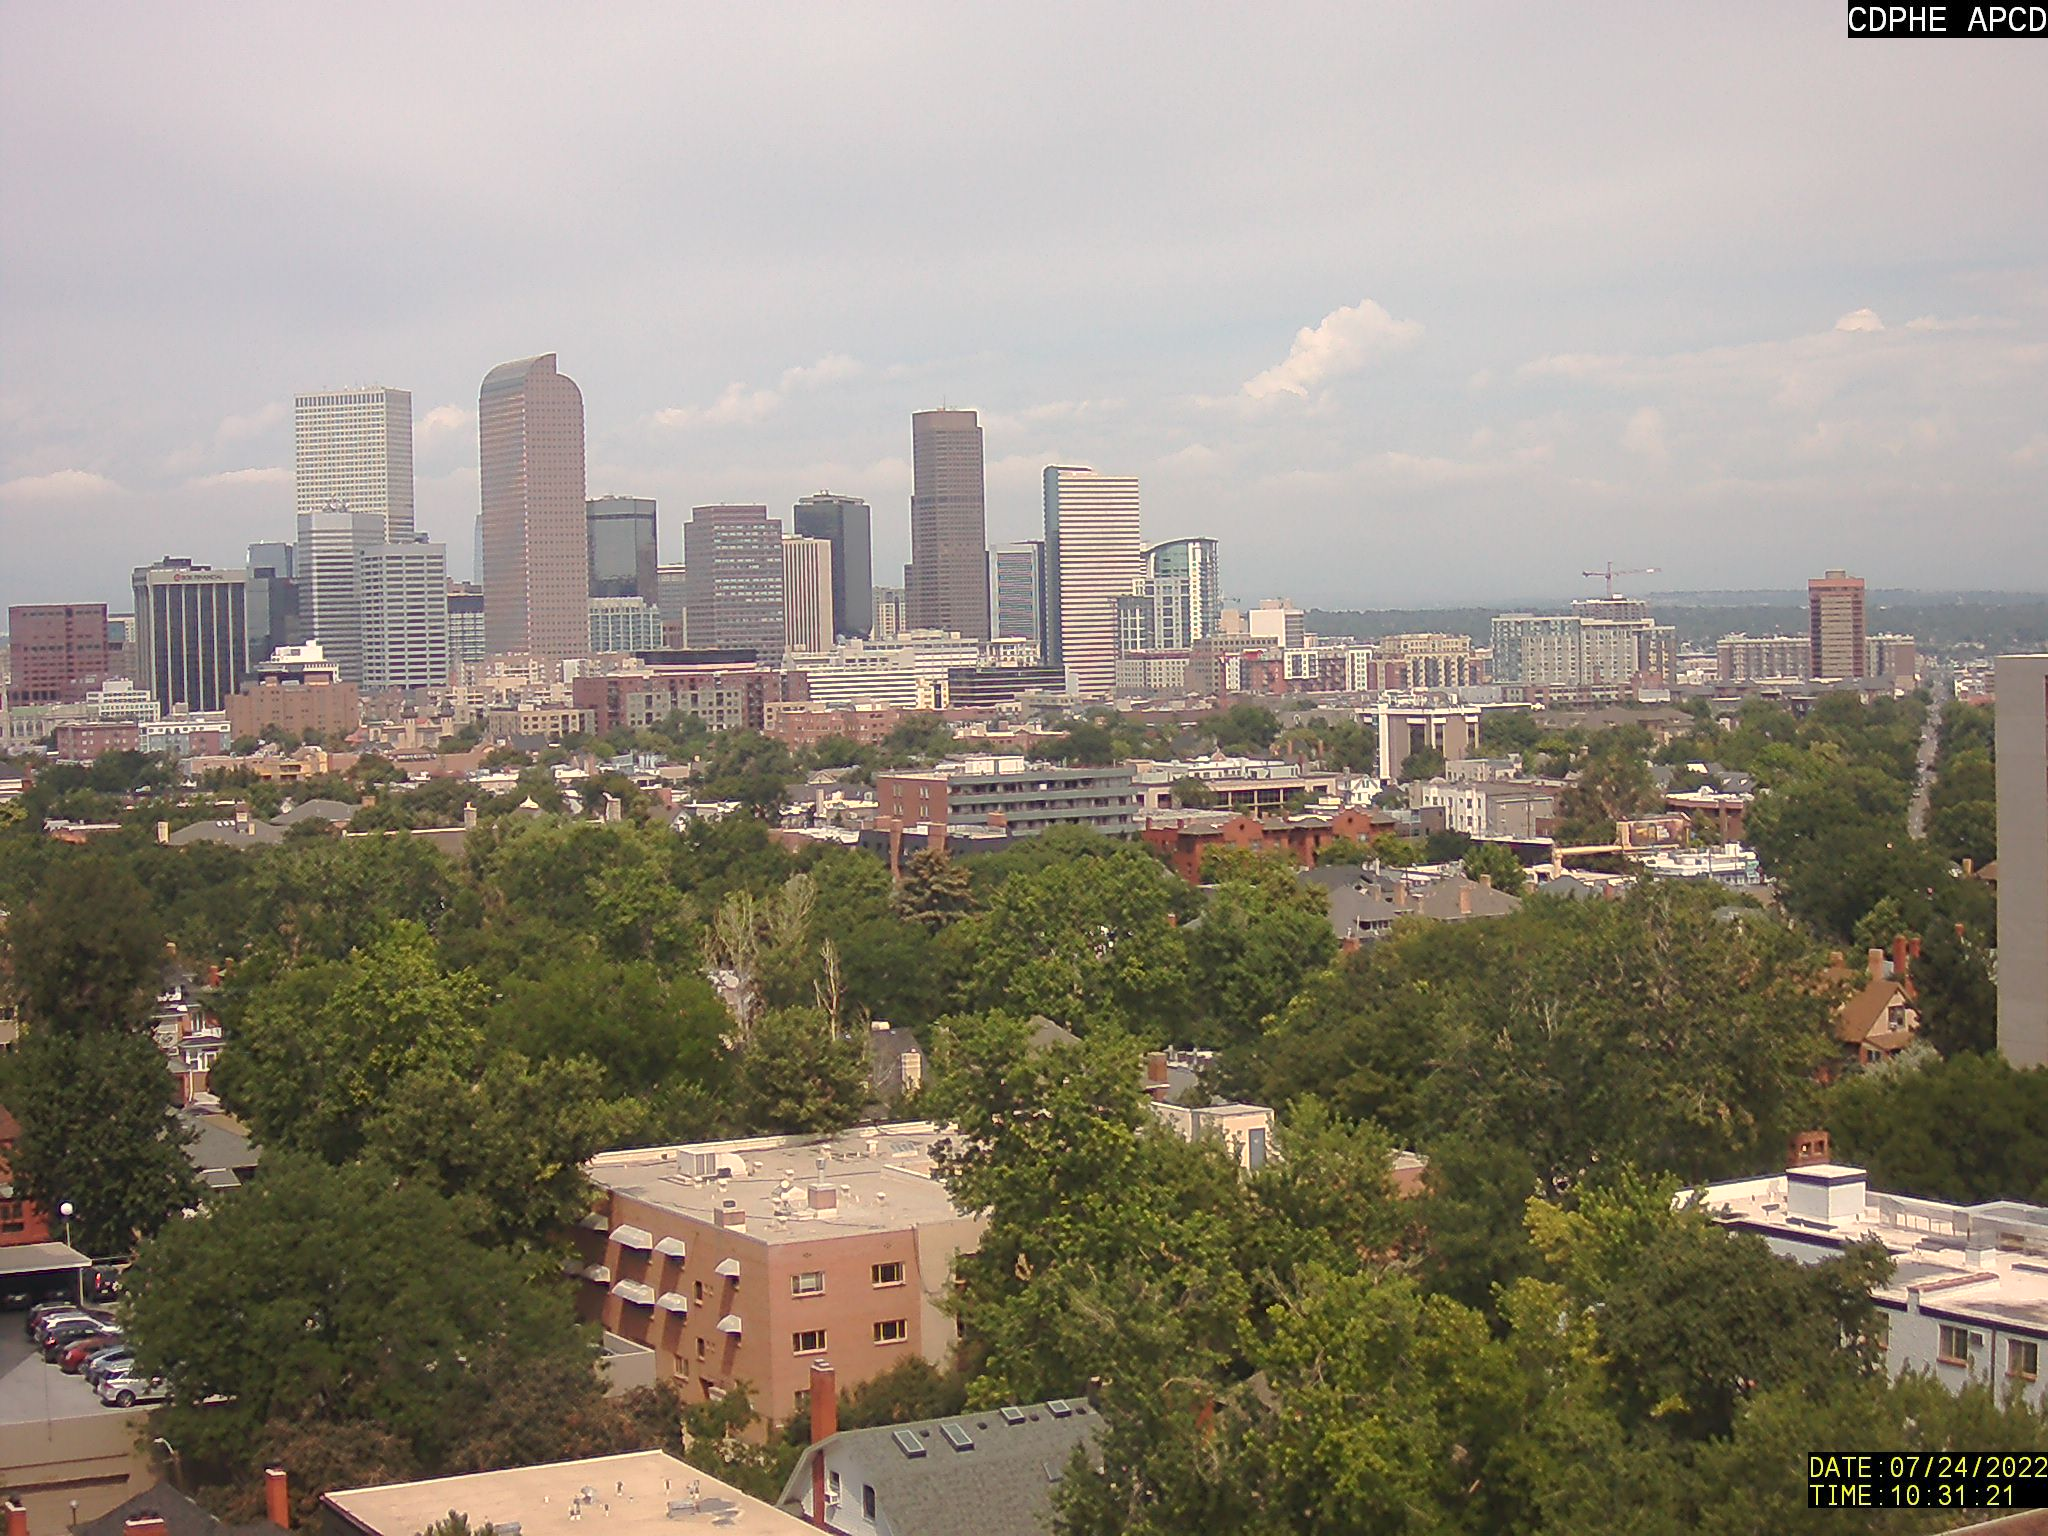 Colorado Department of Public Health and Environment - Air Pollution Cam in Denver